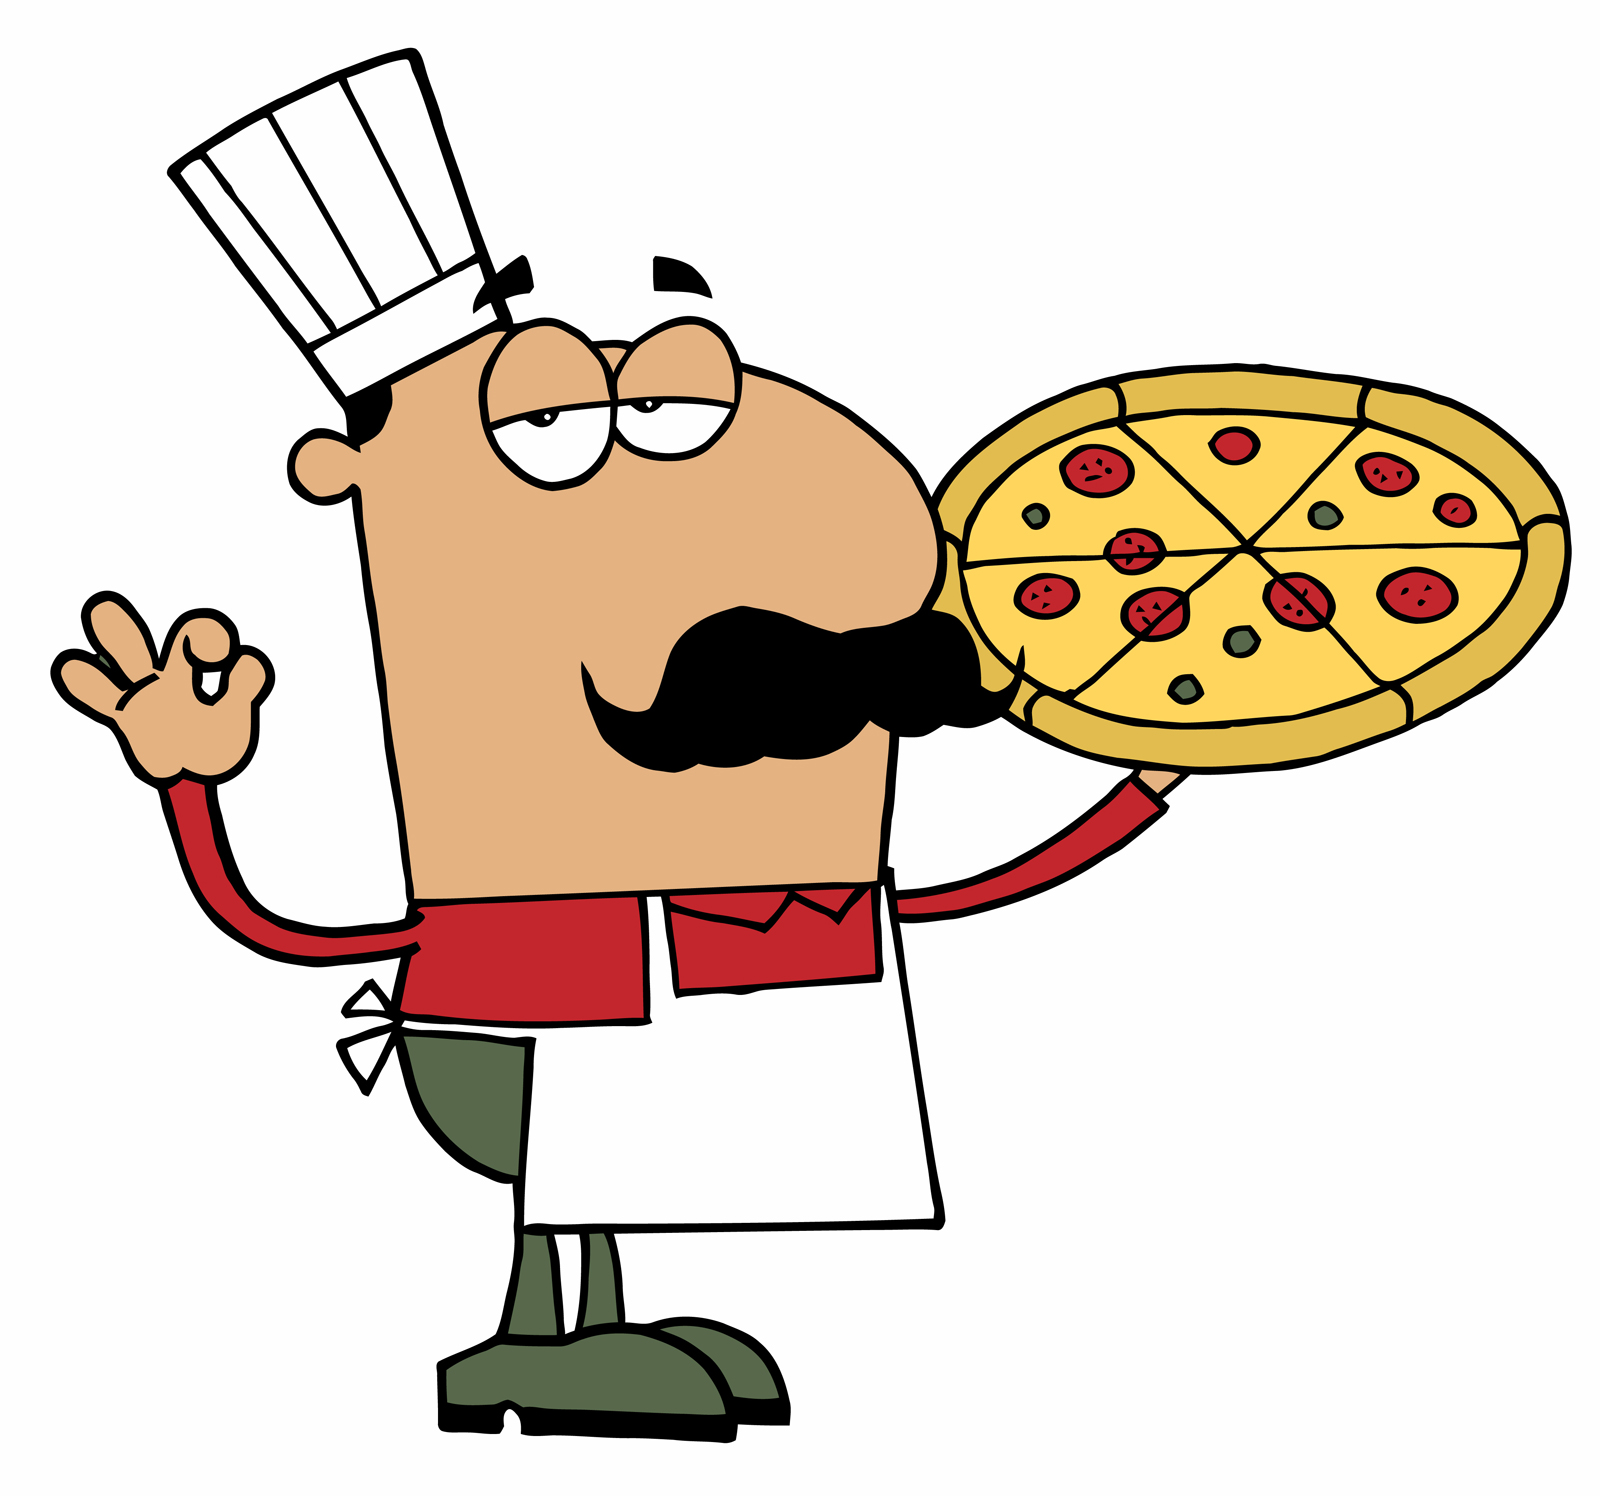 Pizza chef clipart svg royalty free stock Clipart pizza chef - ClipartFest svg royalty free stock